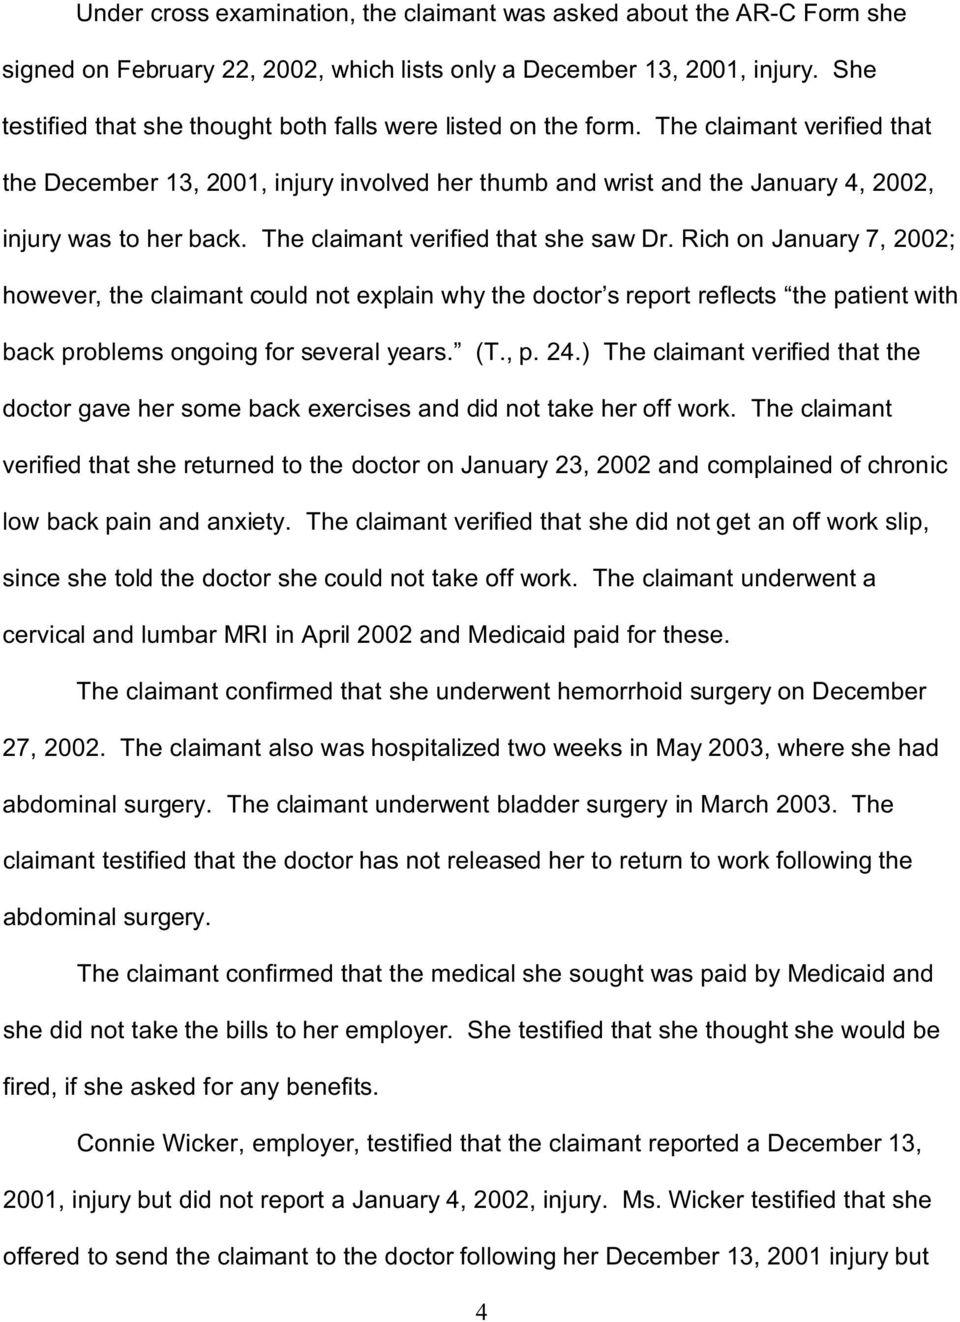 The claimant verified that the December 13, 2001, injury involved her thumb and wrist and the January 4, 2002, injury was to her back. The claimant verified that she saw Dr.